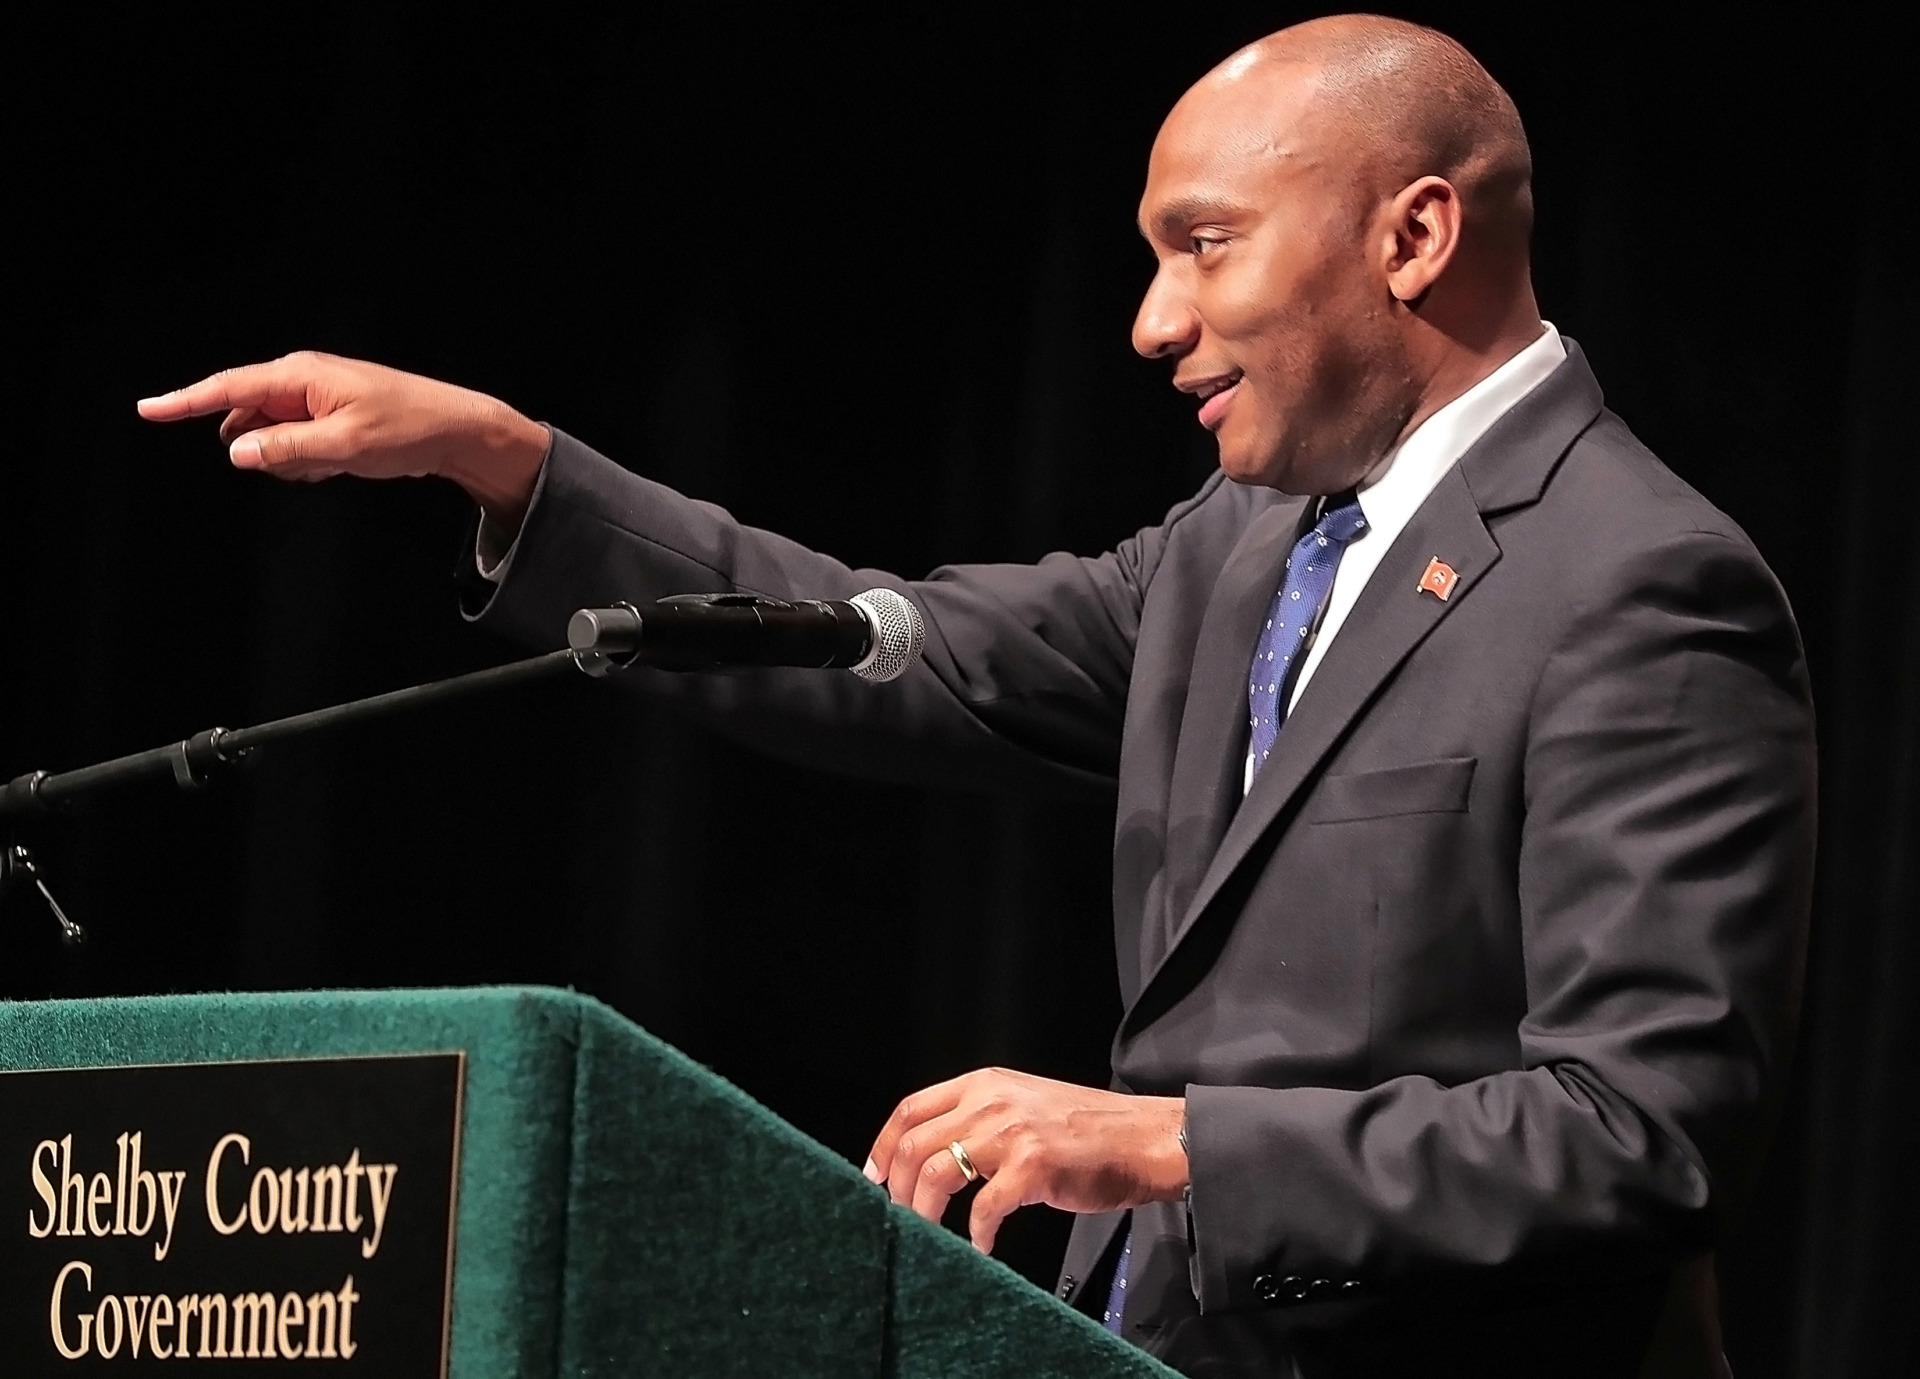 <strong>Shelby County Mayor Lee Harris talks about his first few months in office and top priorities for the coming year during his first State of the County address at the Halloran Centre on Feb. 16, 2019.</strong> (Jim Weber/Daily Memphian)